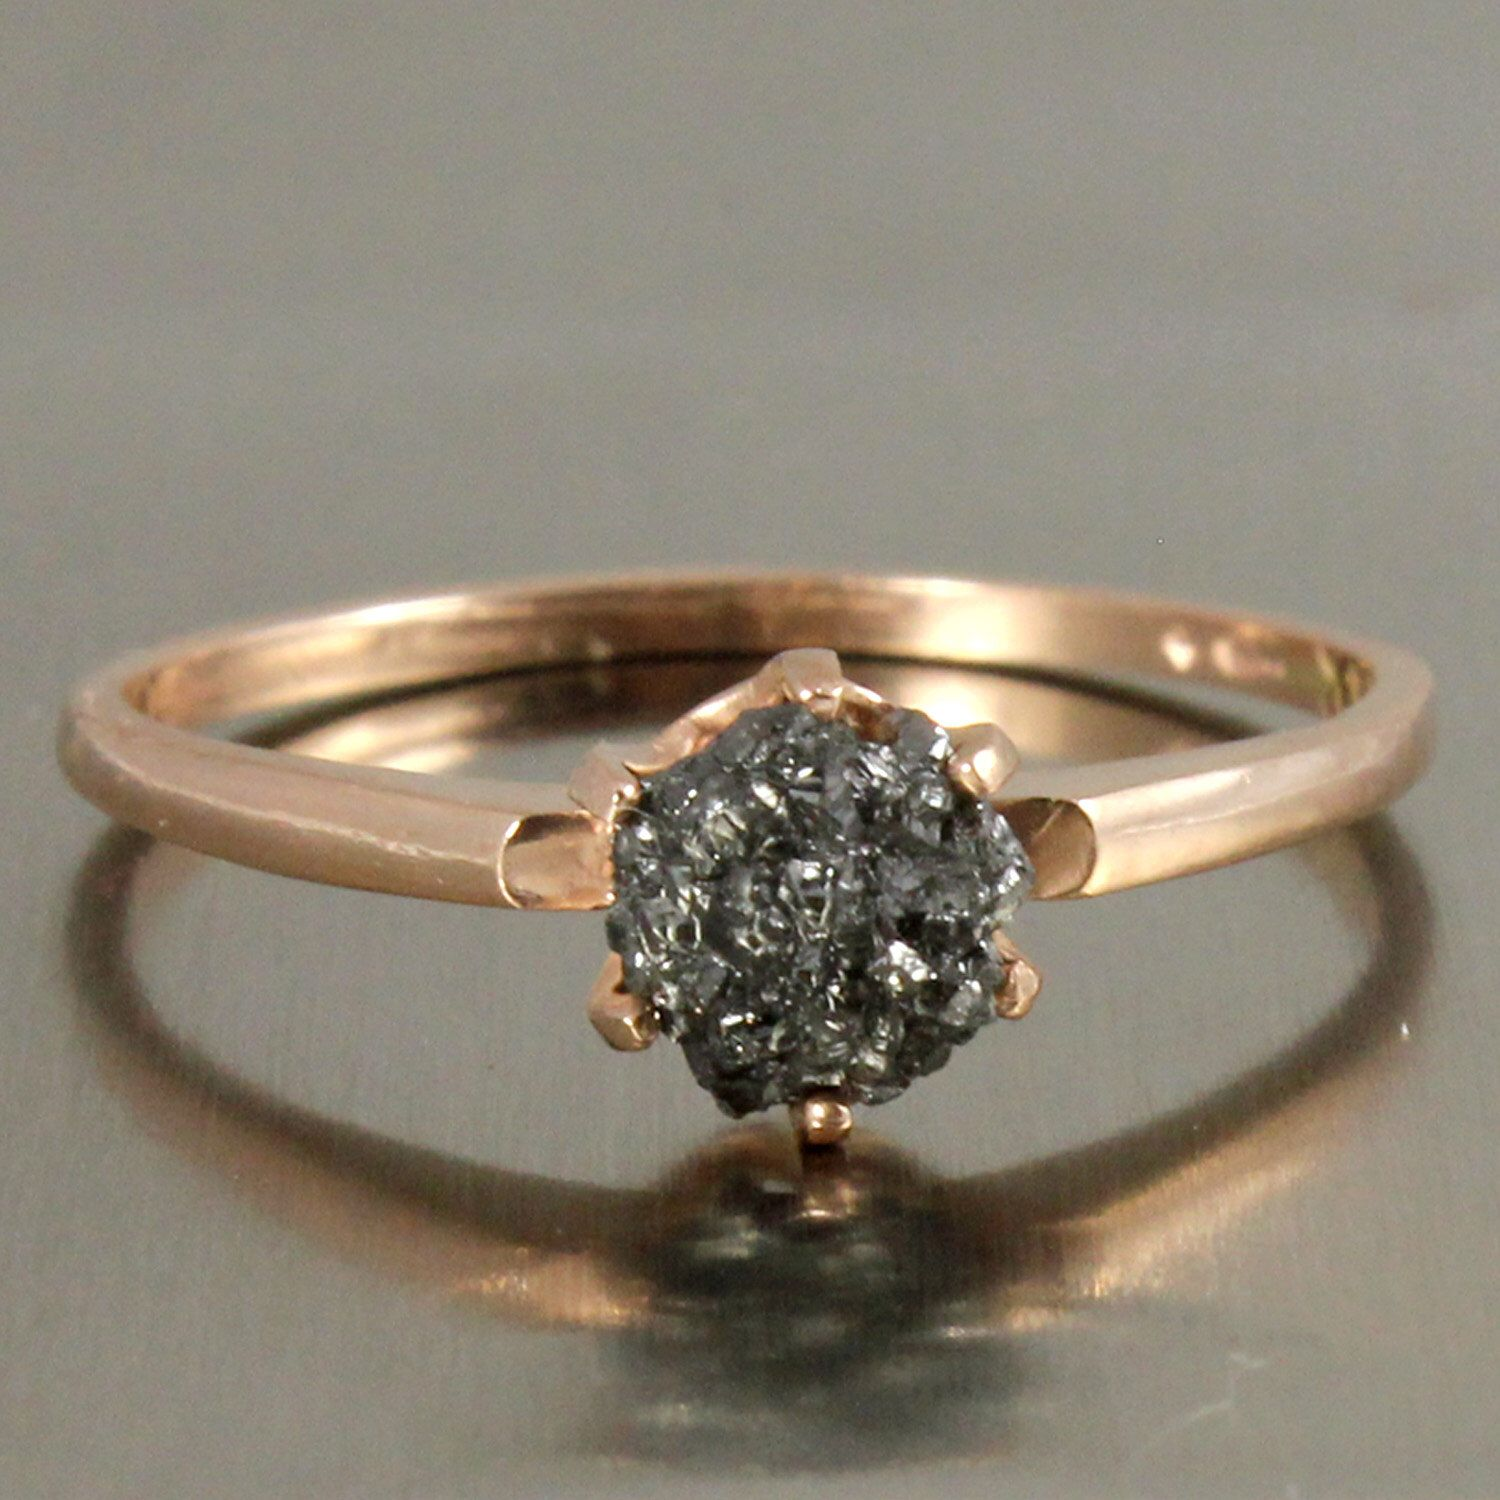 14k Rose Gold Solitaire Ring With Raw Rough Diamond  Black Rough Uncut  Diamond  Classic Engagement Ring  Promise Ring  April Birthstone